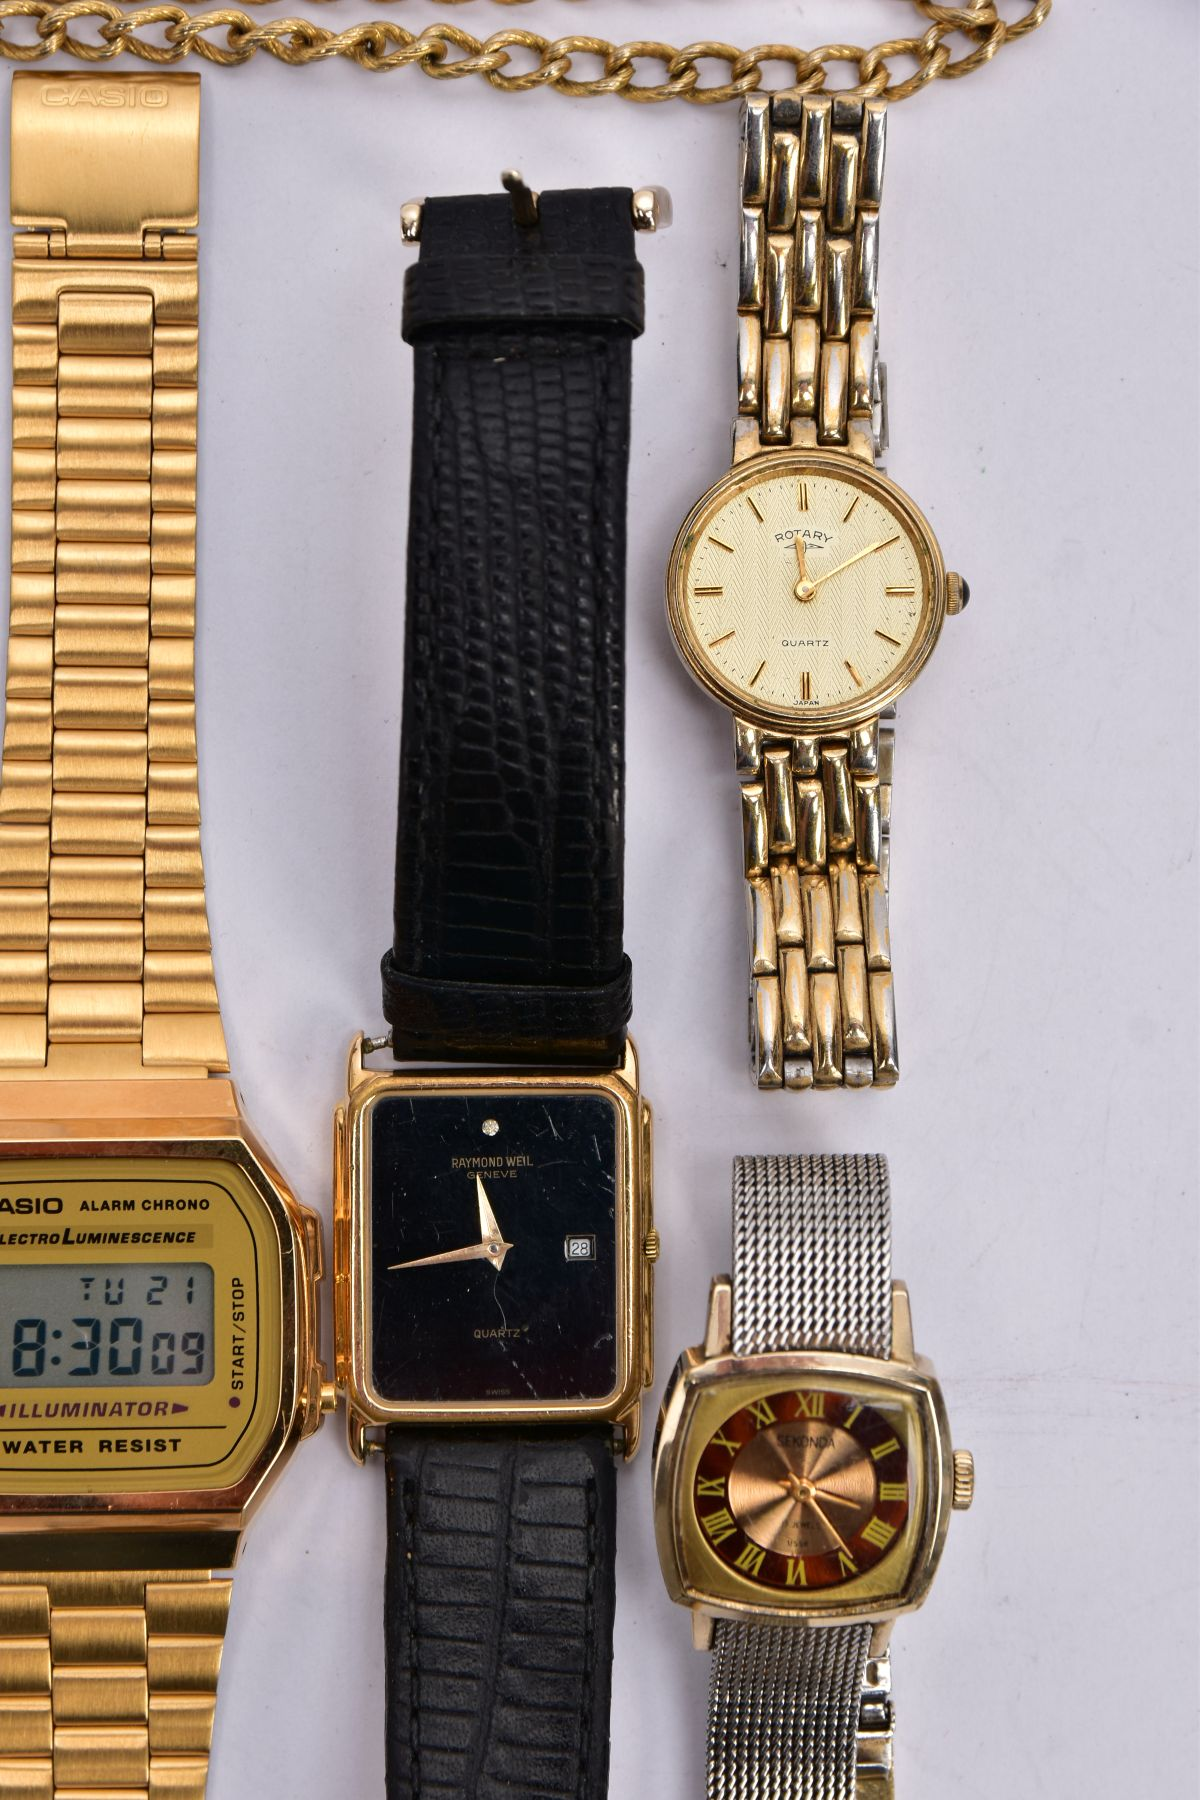 A BAG OF ASSORTED WRISTWATCHES, to include a 'Casio alarm chrono, electro luminescence' - Image 5 of 5